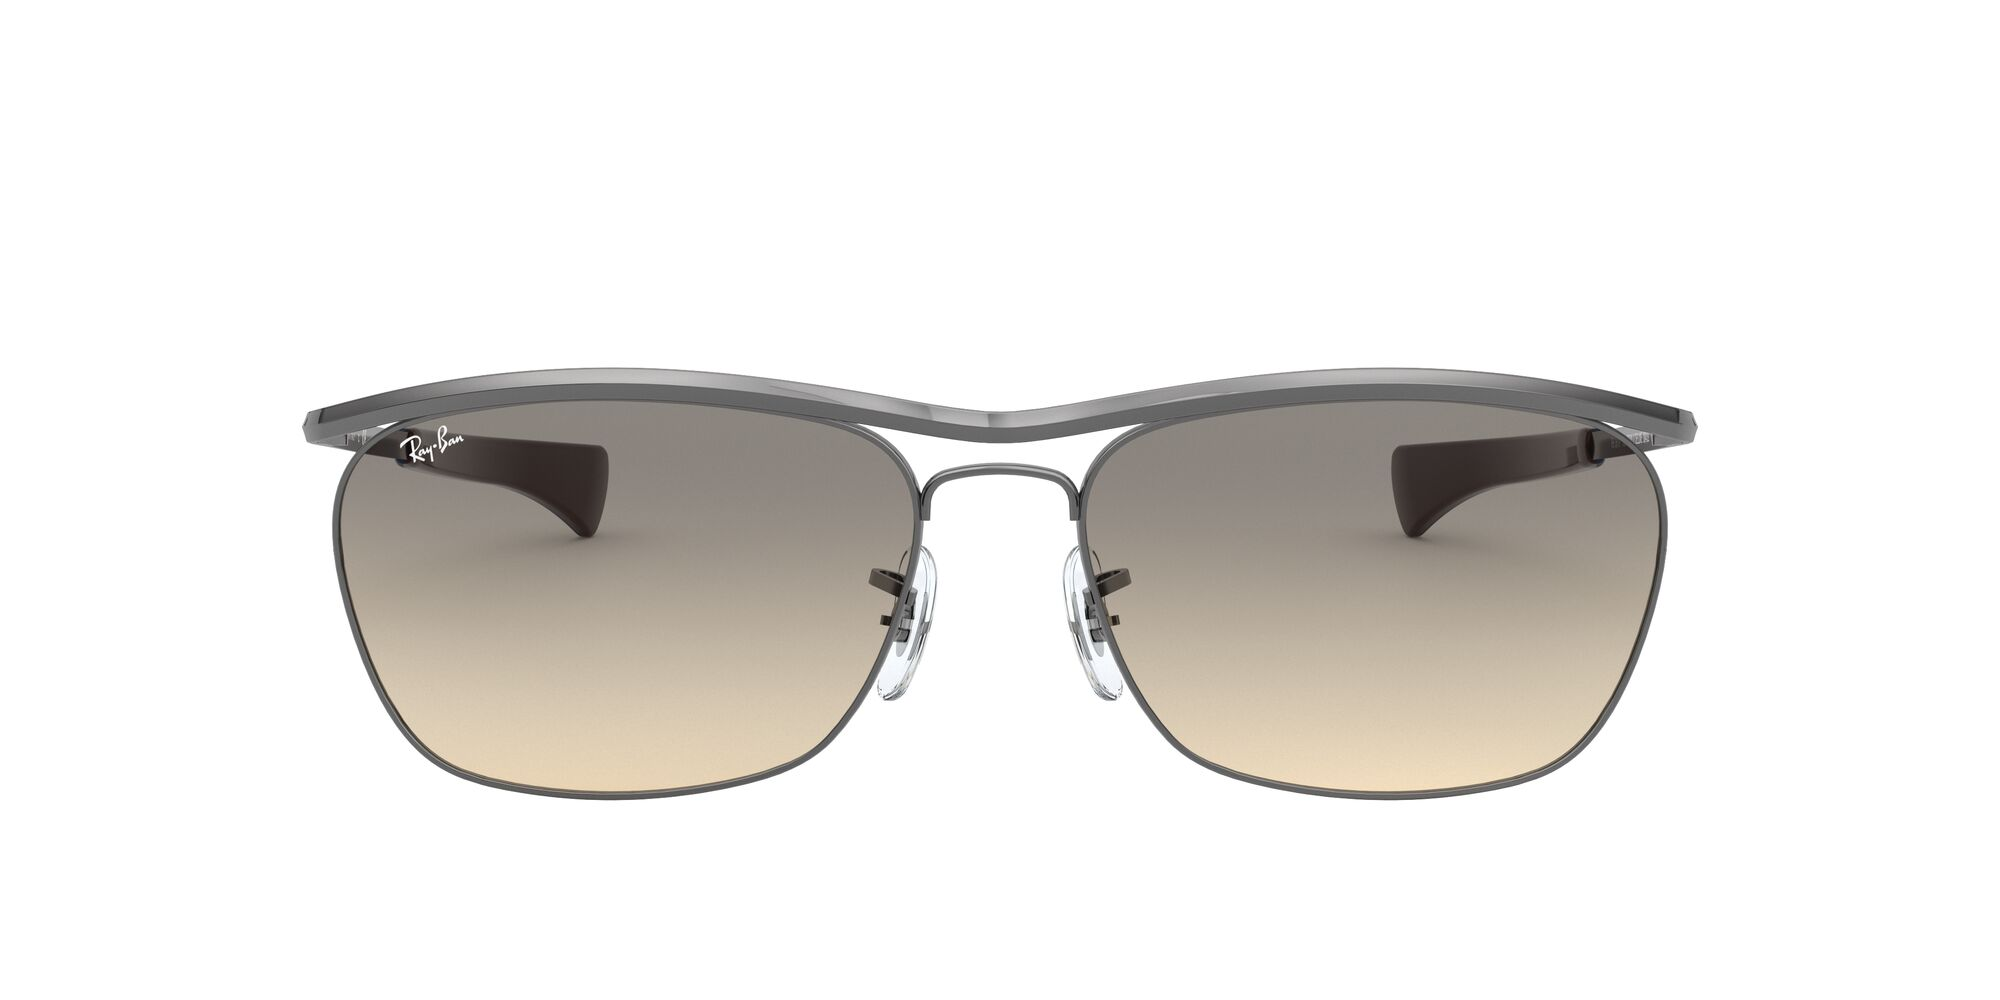 Front Ray-Ban Ray-Ban 0RB3619 004/32 60/16 Zilver/Grijs